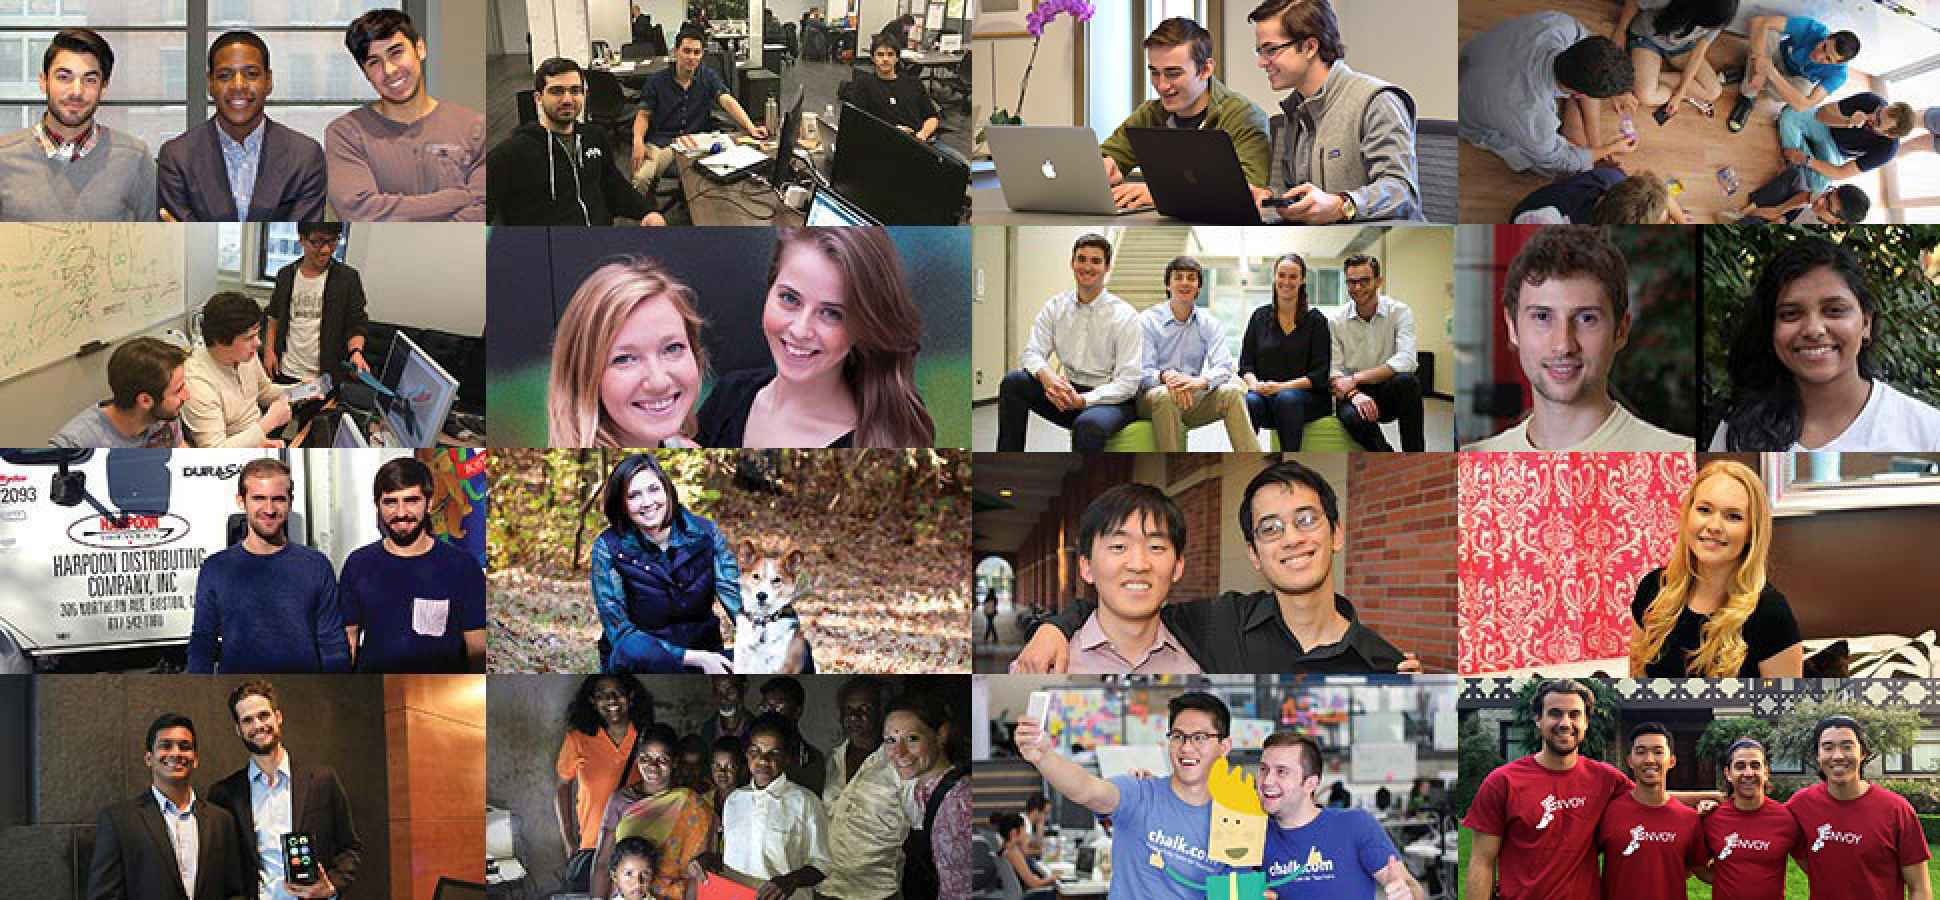 The Coolest College Startups of 2015